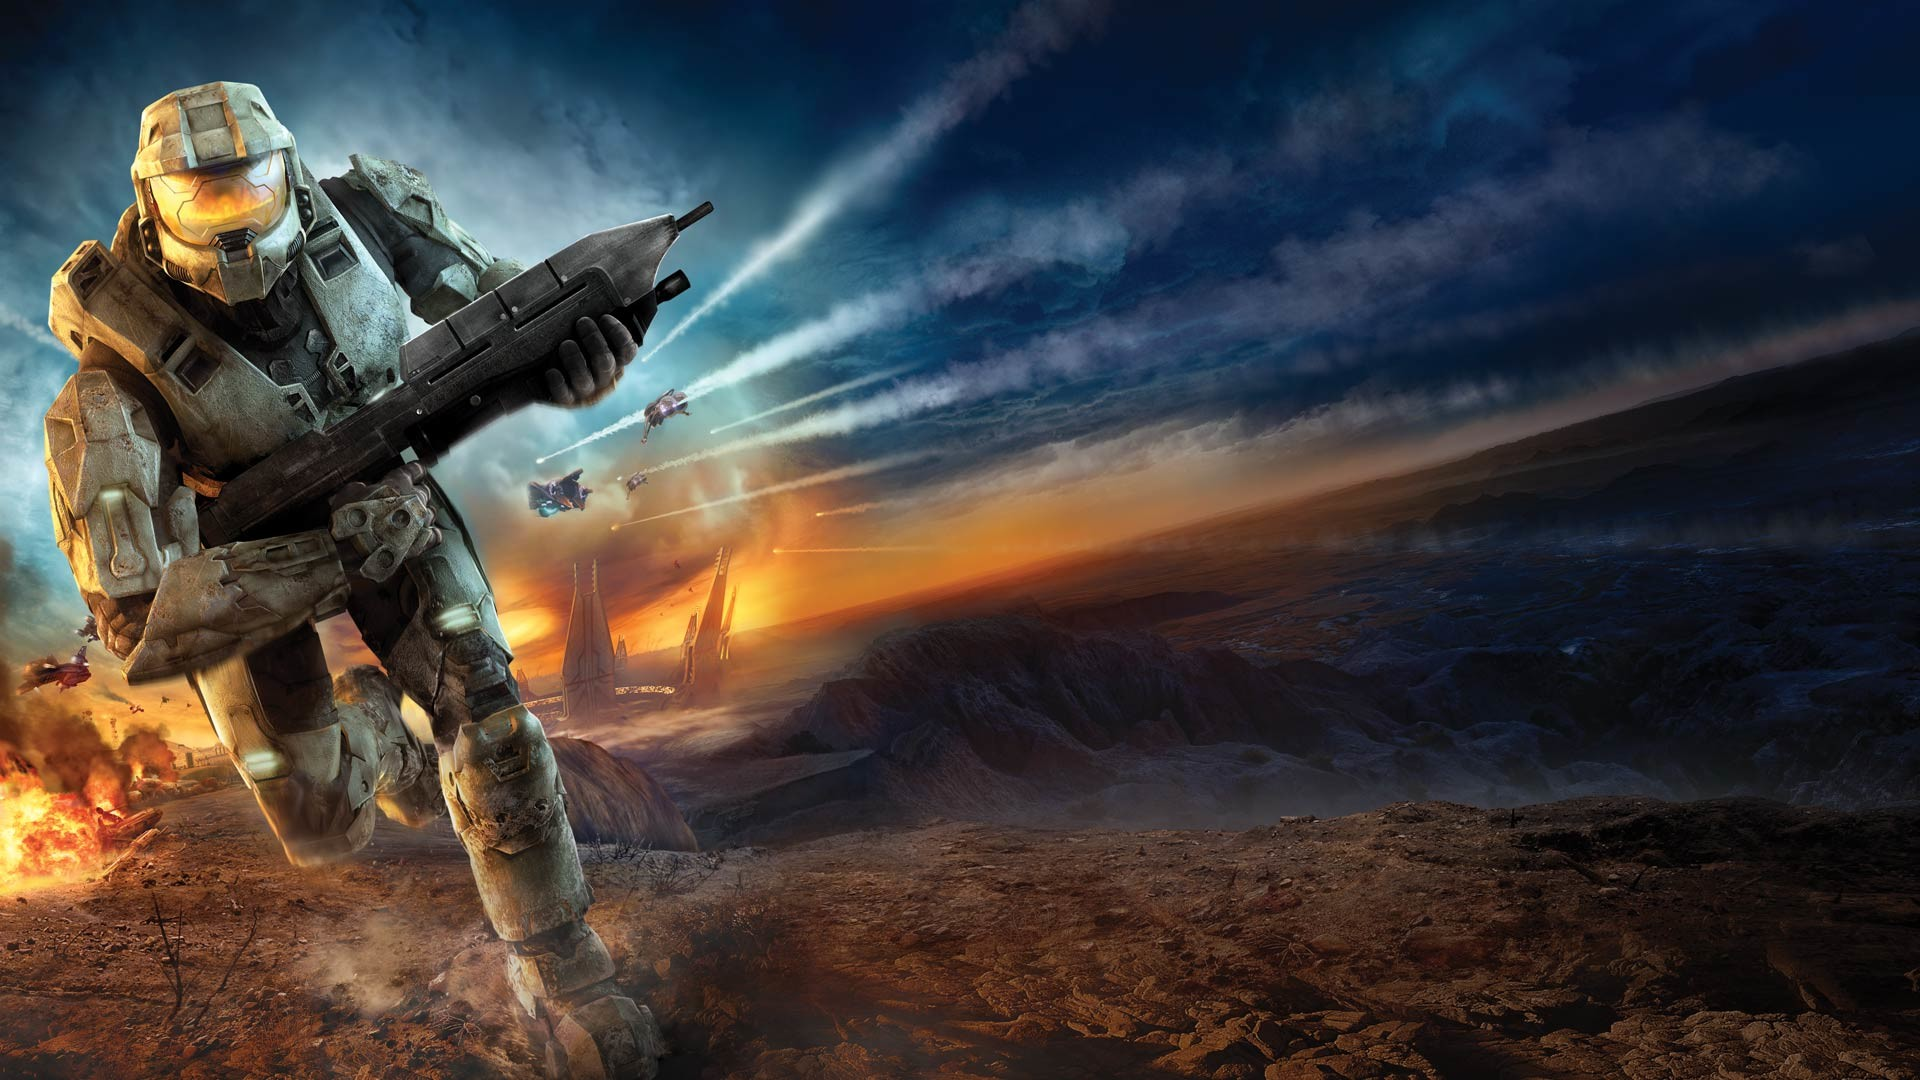 1920x1080 Choose Download Size For This Wallpaper HD Halo